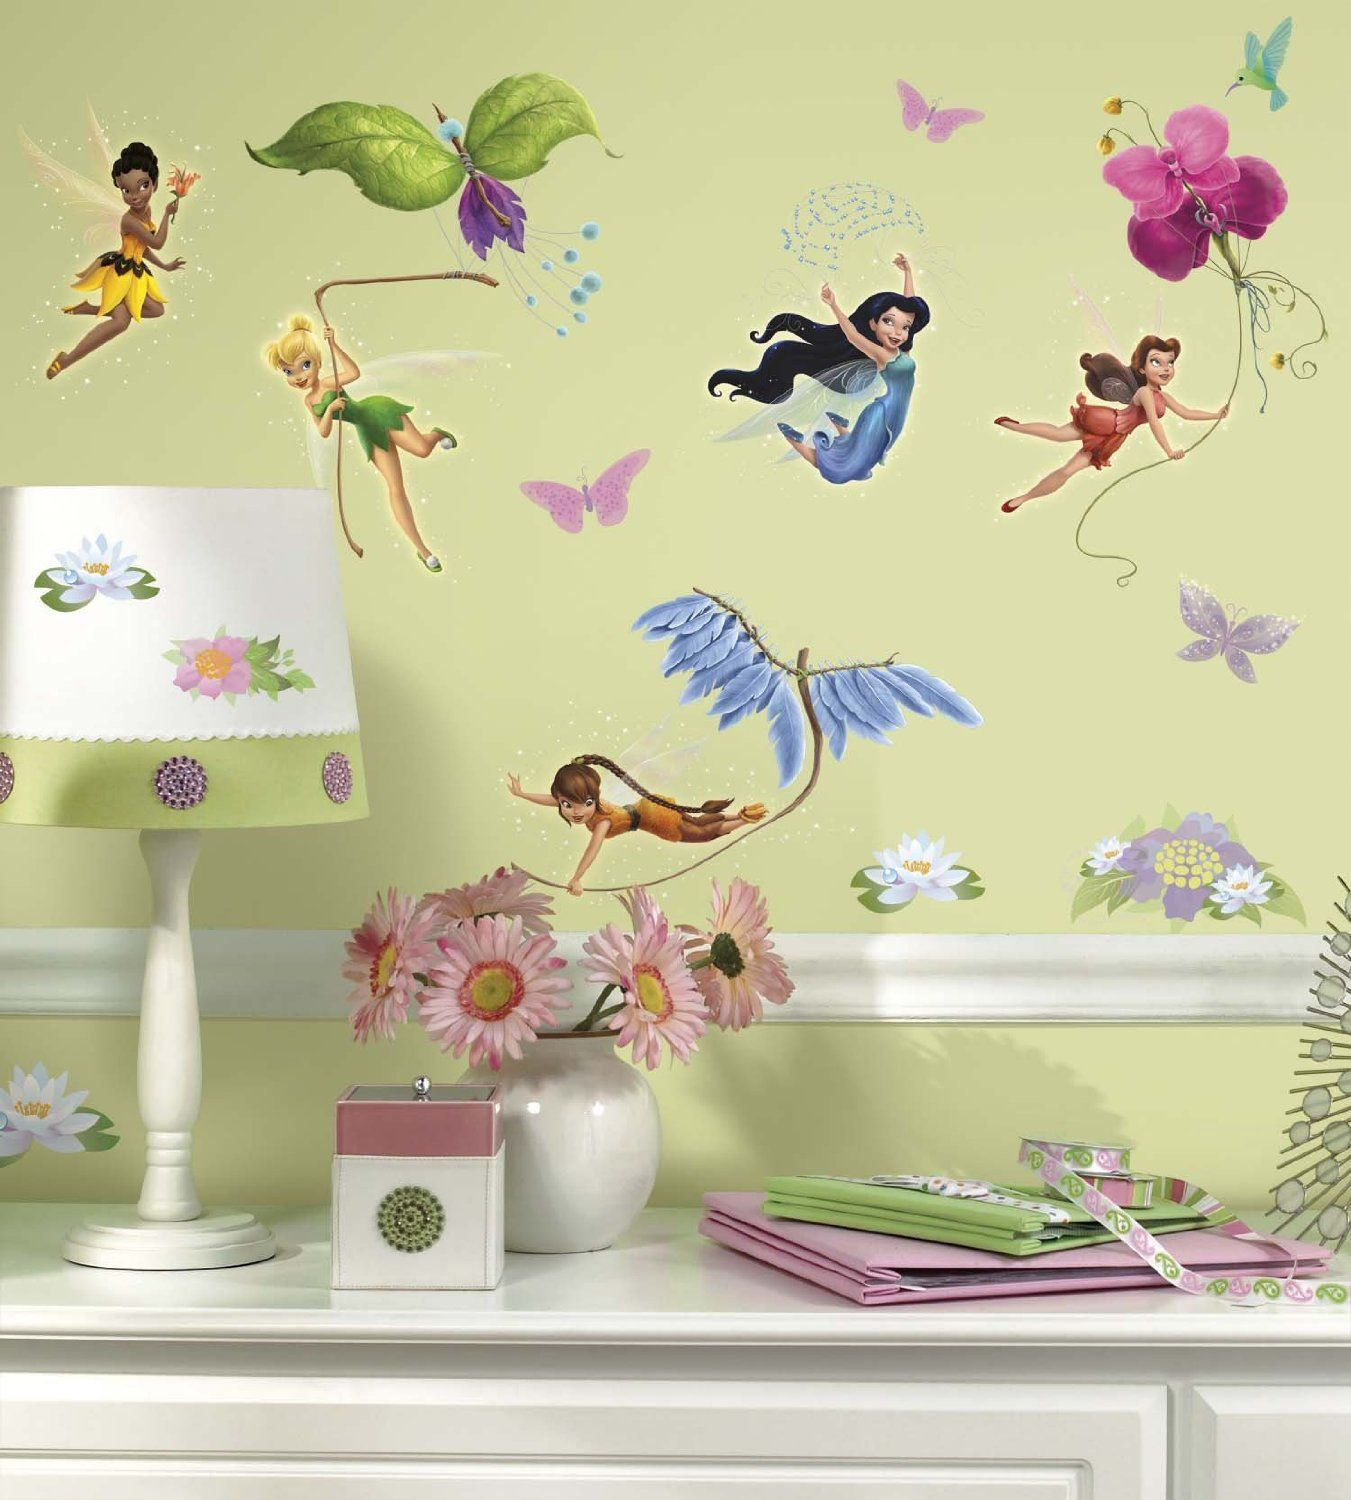 Amazon.com: Roommates Rmk1493Scs Disney Fairies Wall Decals With ...